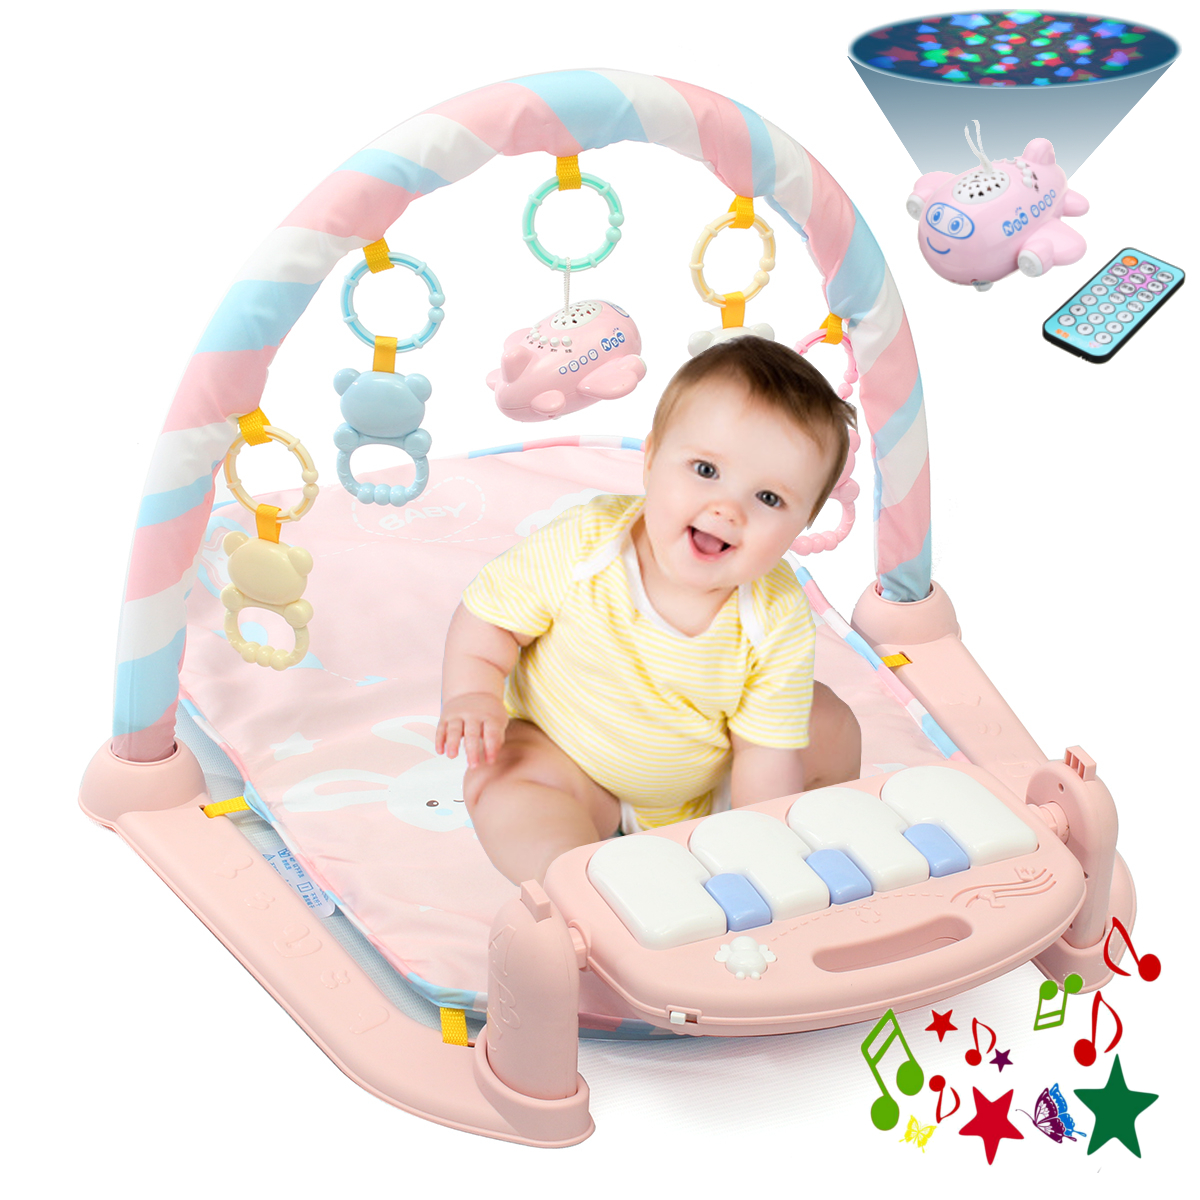 Baby Play Mat Gym- 3 in1 Newborn Infant Baby Musical Piano Play Mat Blanket Kids Activity Carpet Rug